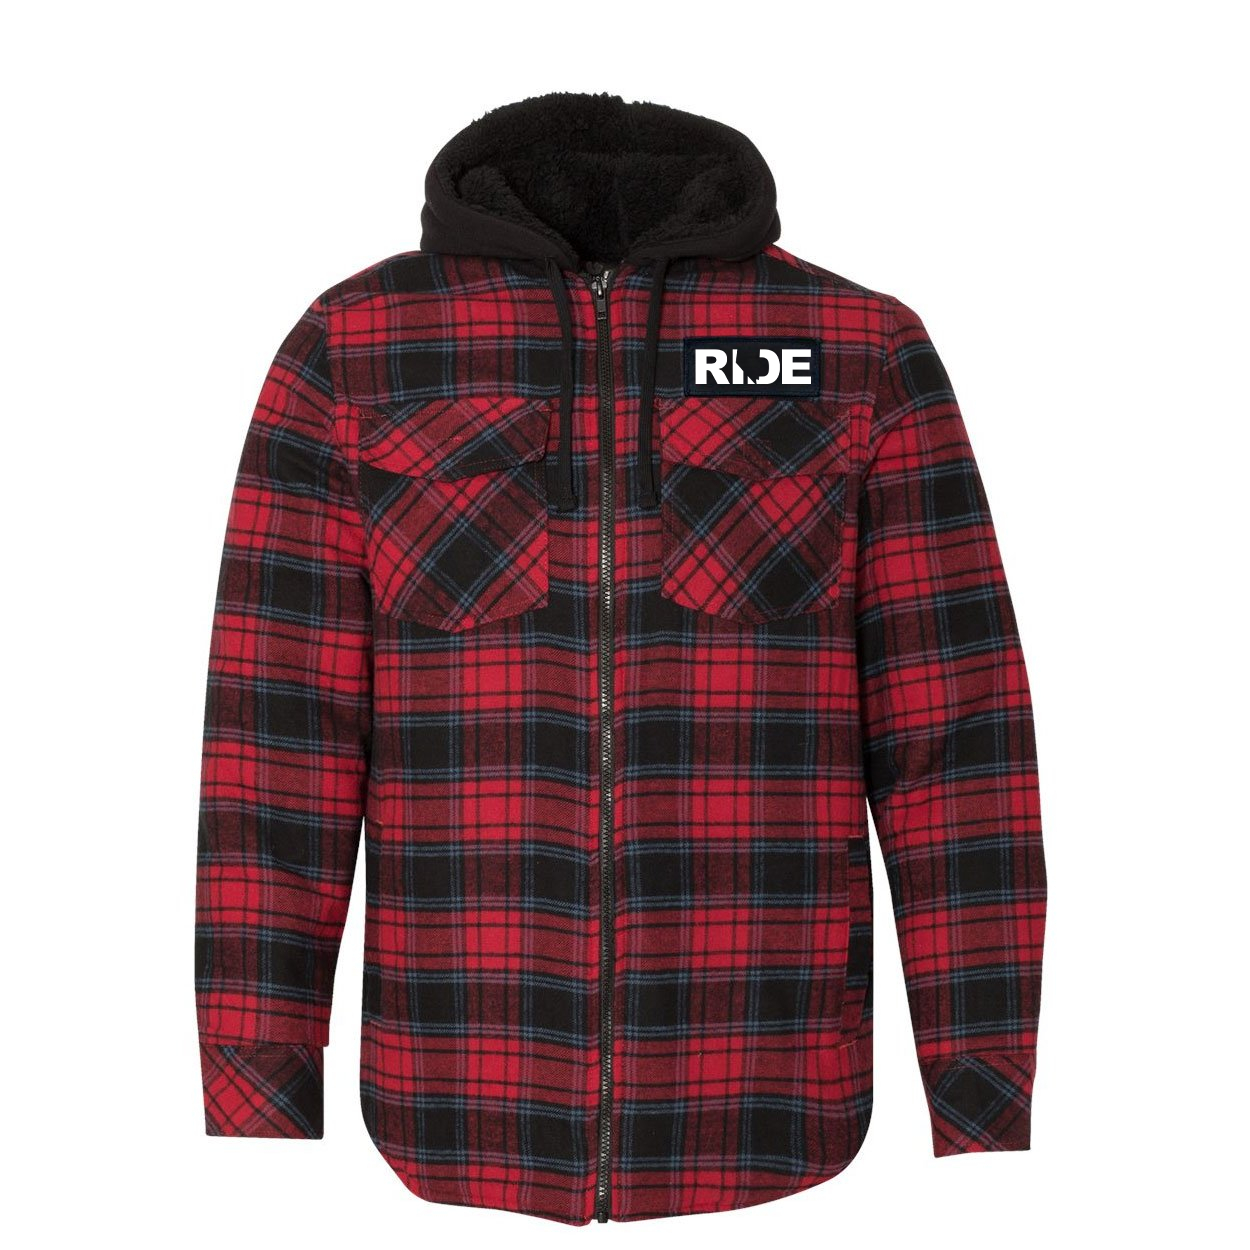 Ride Nevada Classic Unisex Full Zip Woven Patch Hooded Flannel Jacket Red/Black Buffalo (White Logo)